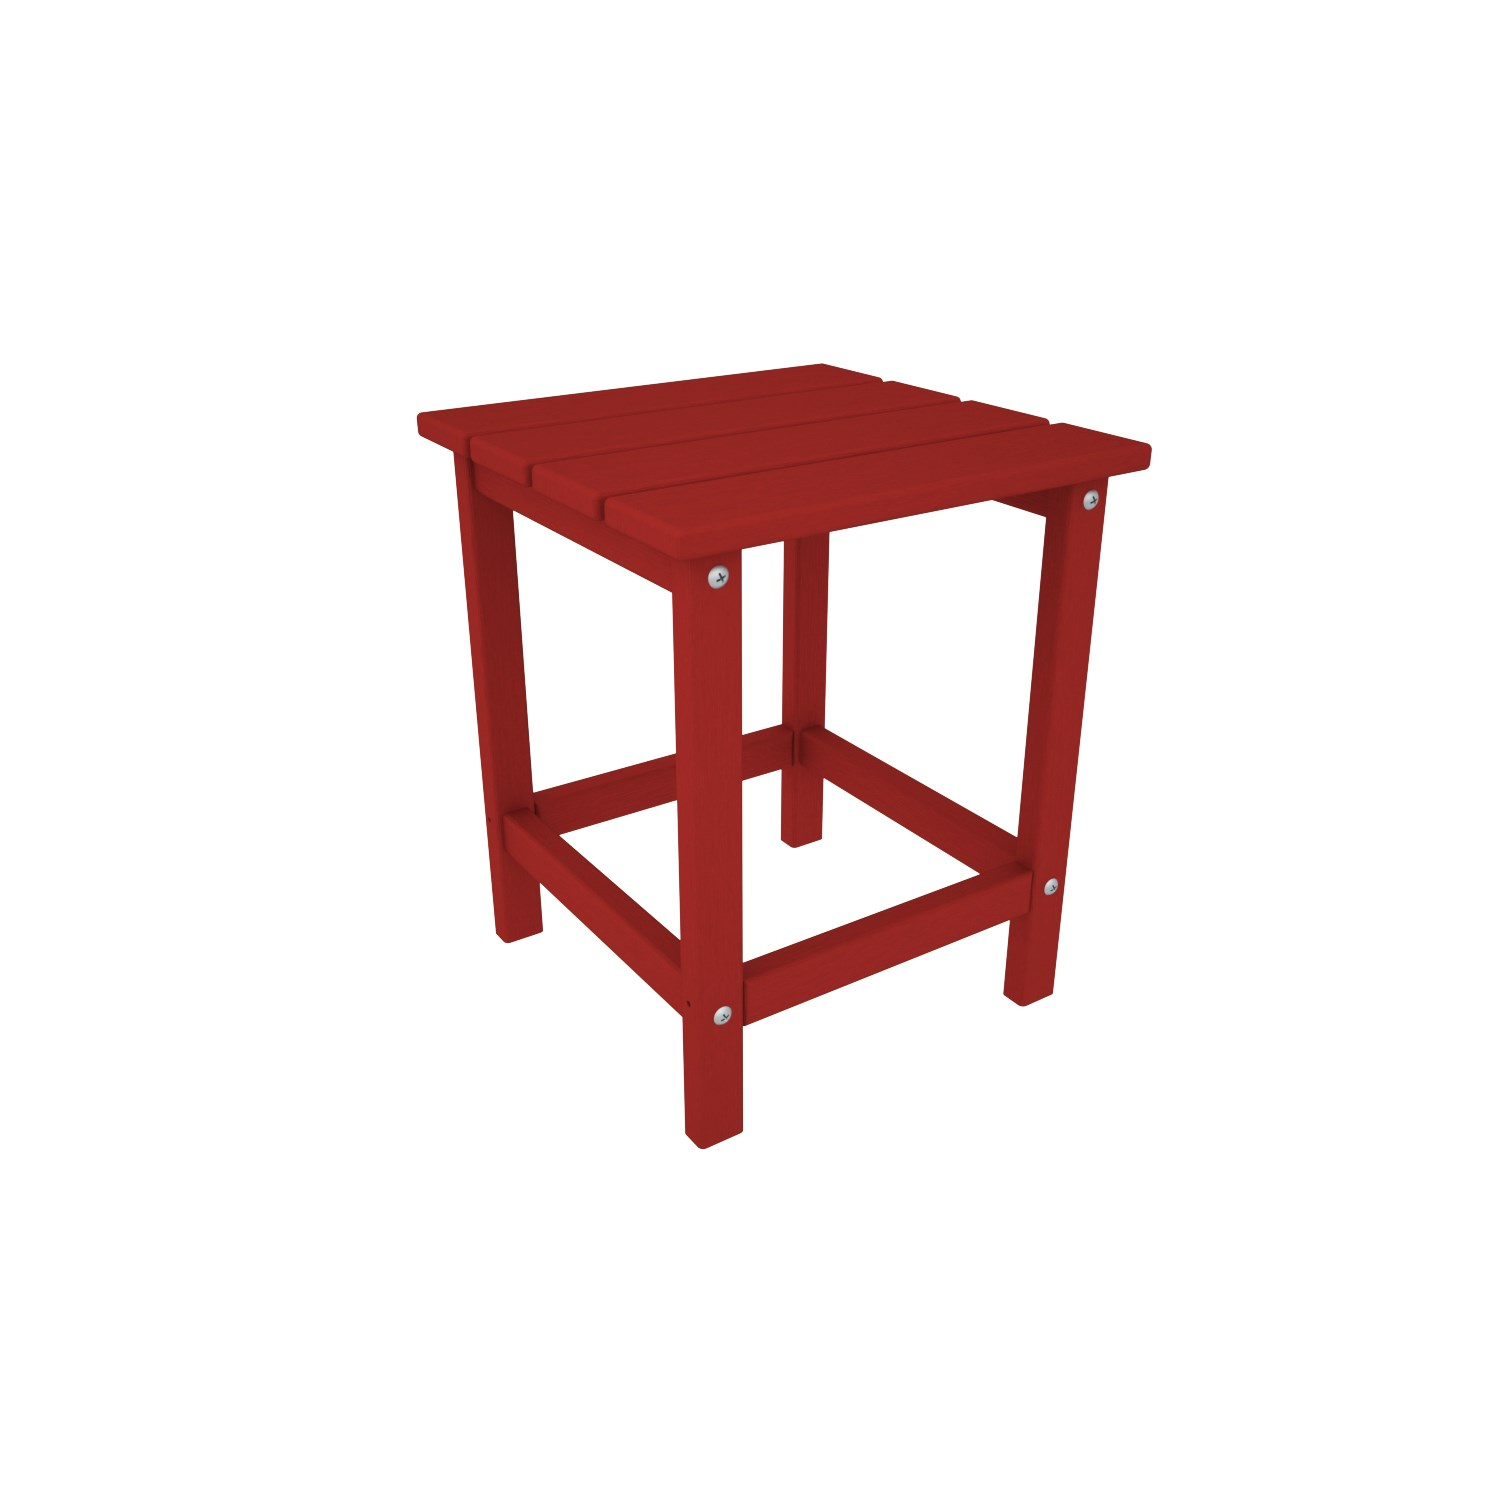 polywood long island outdoor side table the simple white red accent large round dining runner carpet edge strip display coffee ikea mid century replica furniture diy kitchen